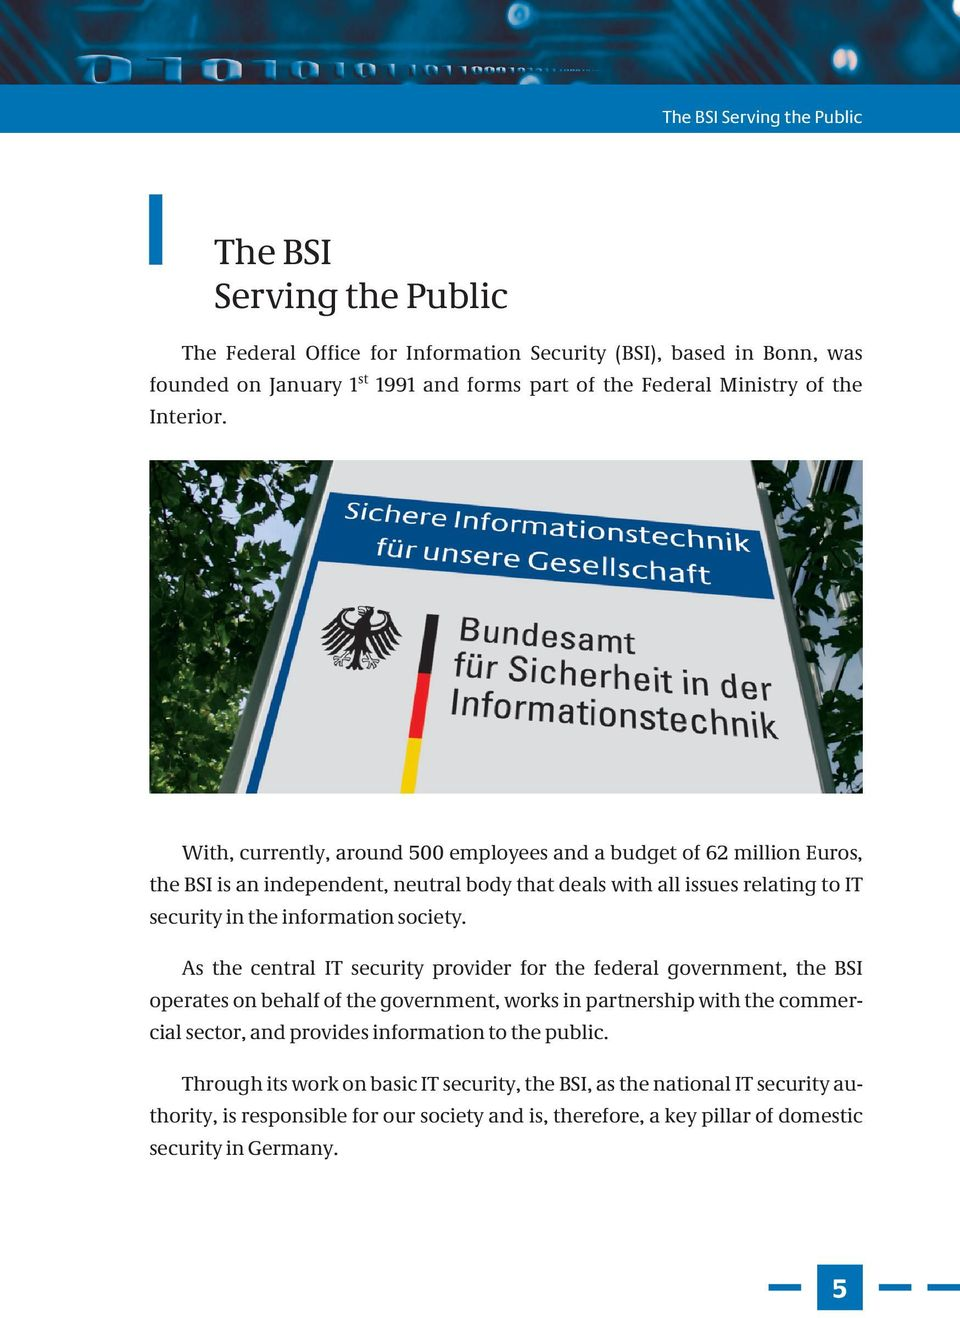 With, currently, around 500 employees and a budget of 62 million Euros, the BSI is an independent, neutral body that deals with all issues relating to IT security in the information society.